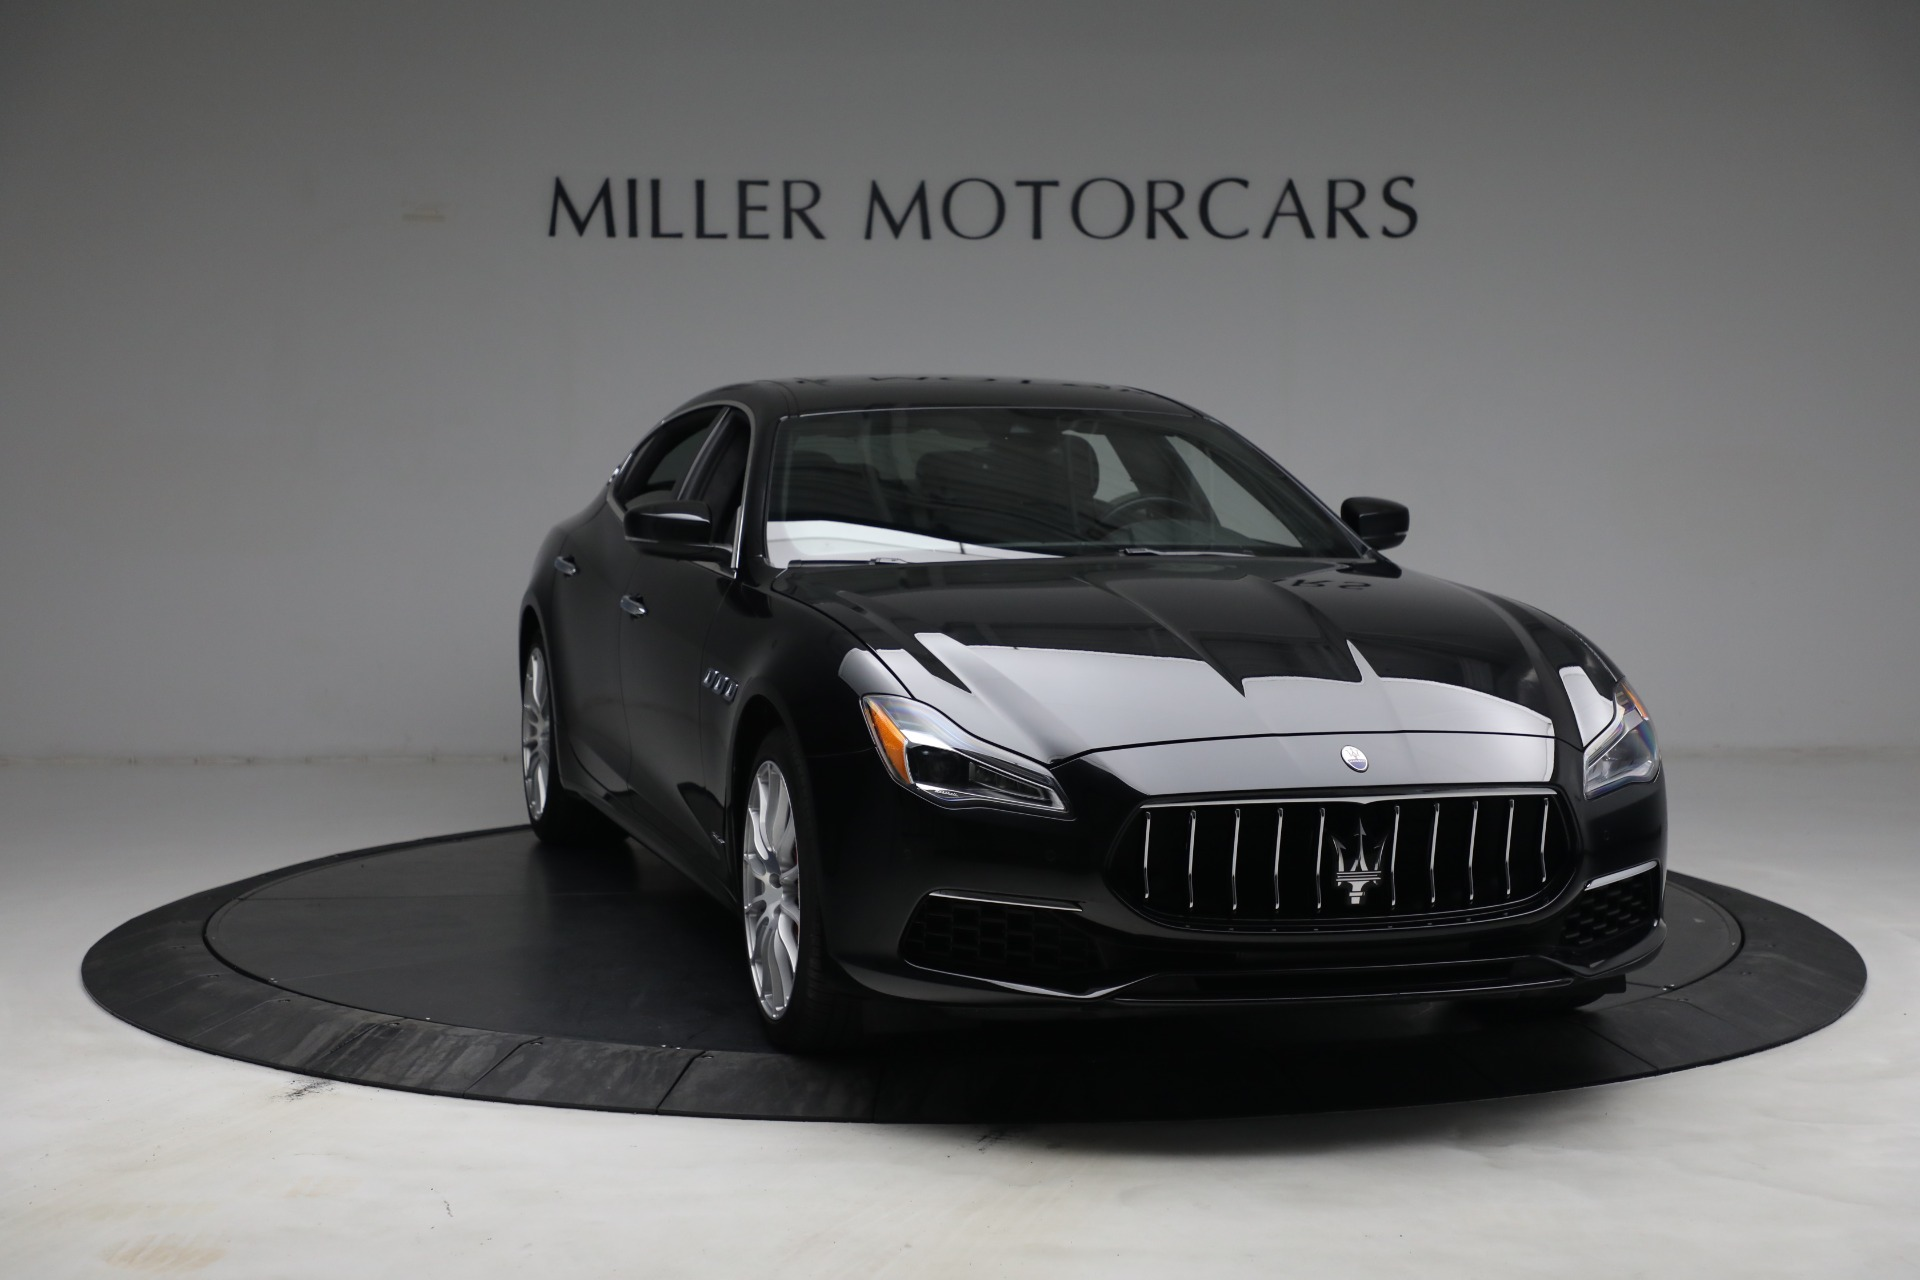 New 2019 Maserati Quattroporte S Q4 GranLusso For Sale In Greenwich, CT 2619_p12